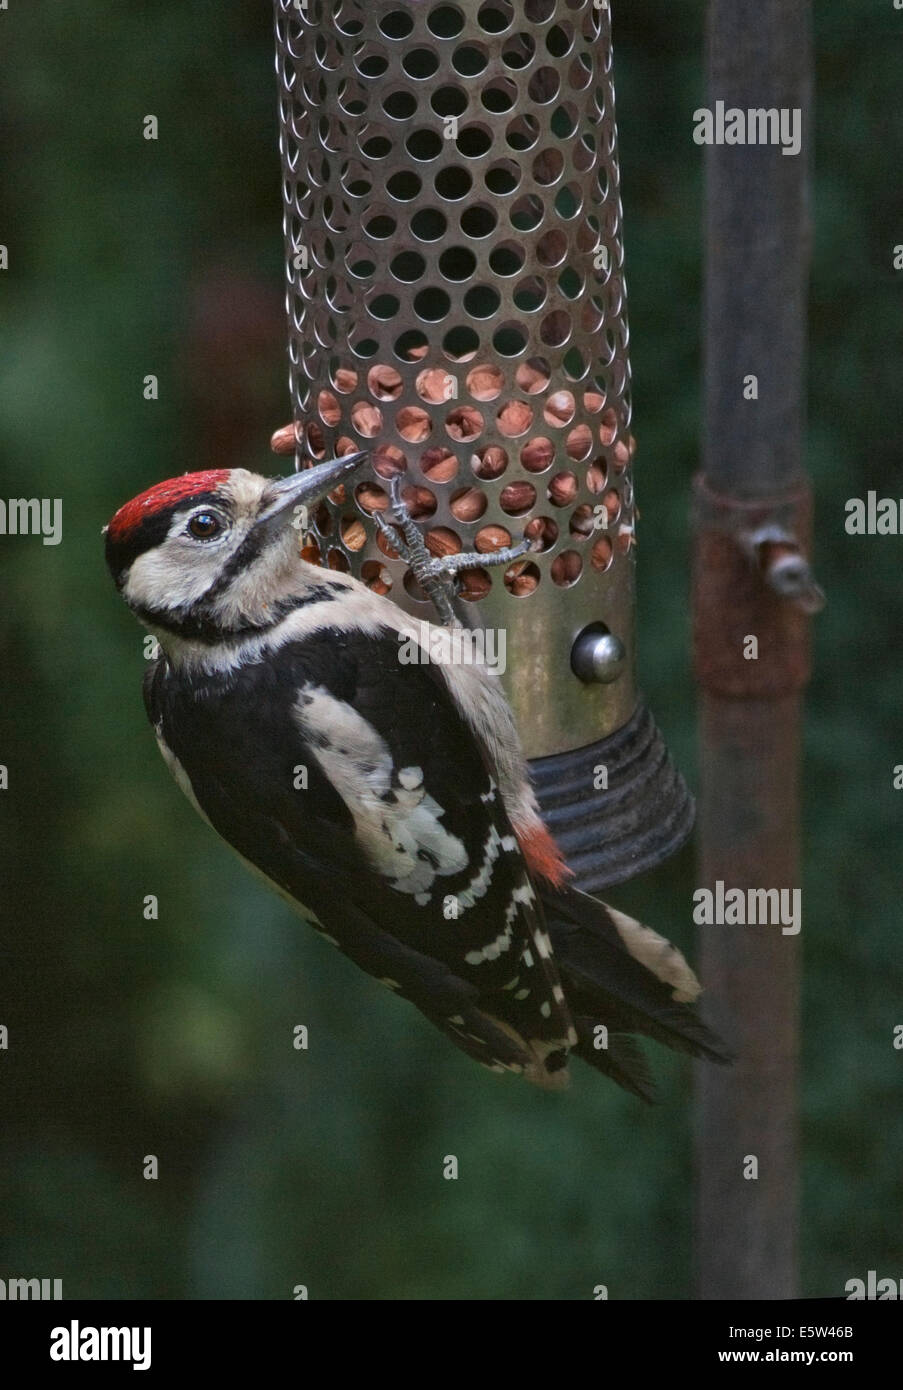 Great Spotted Woodpecker male (dendrocopus major) eating nuts on a bird feeder, UK - Stock Image